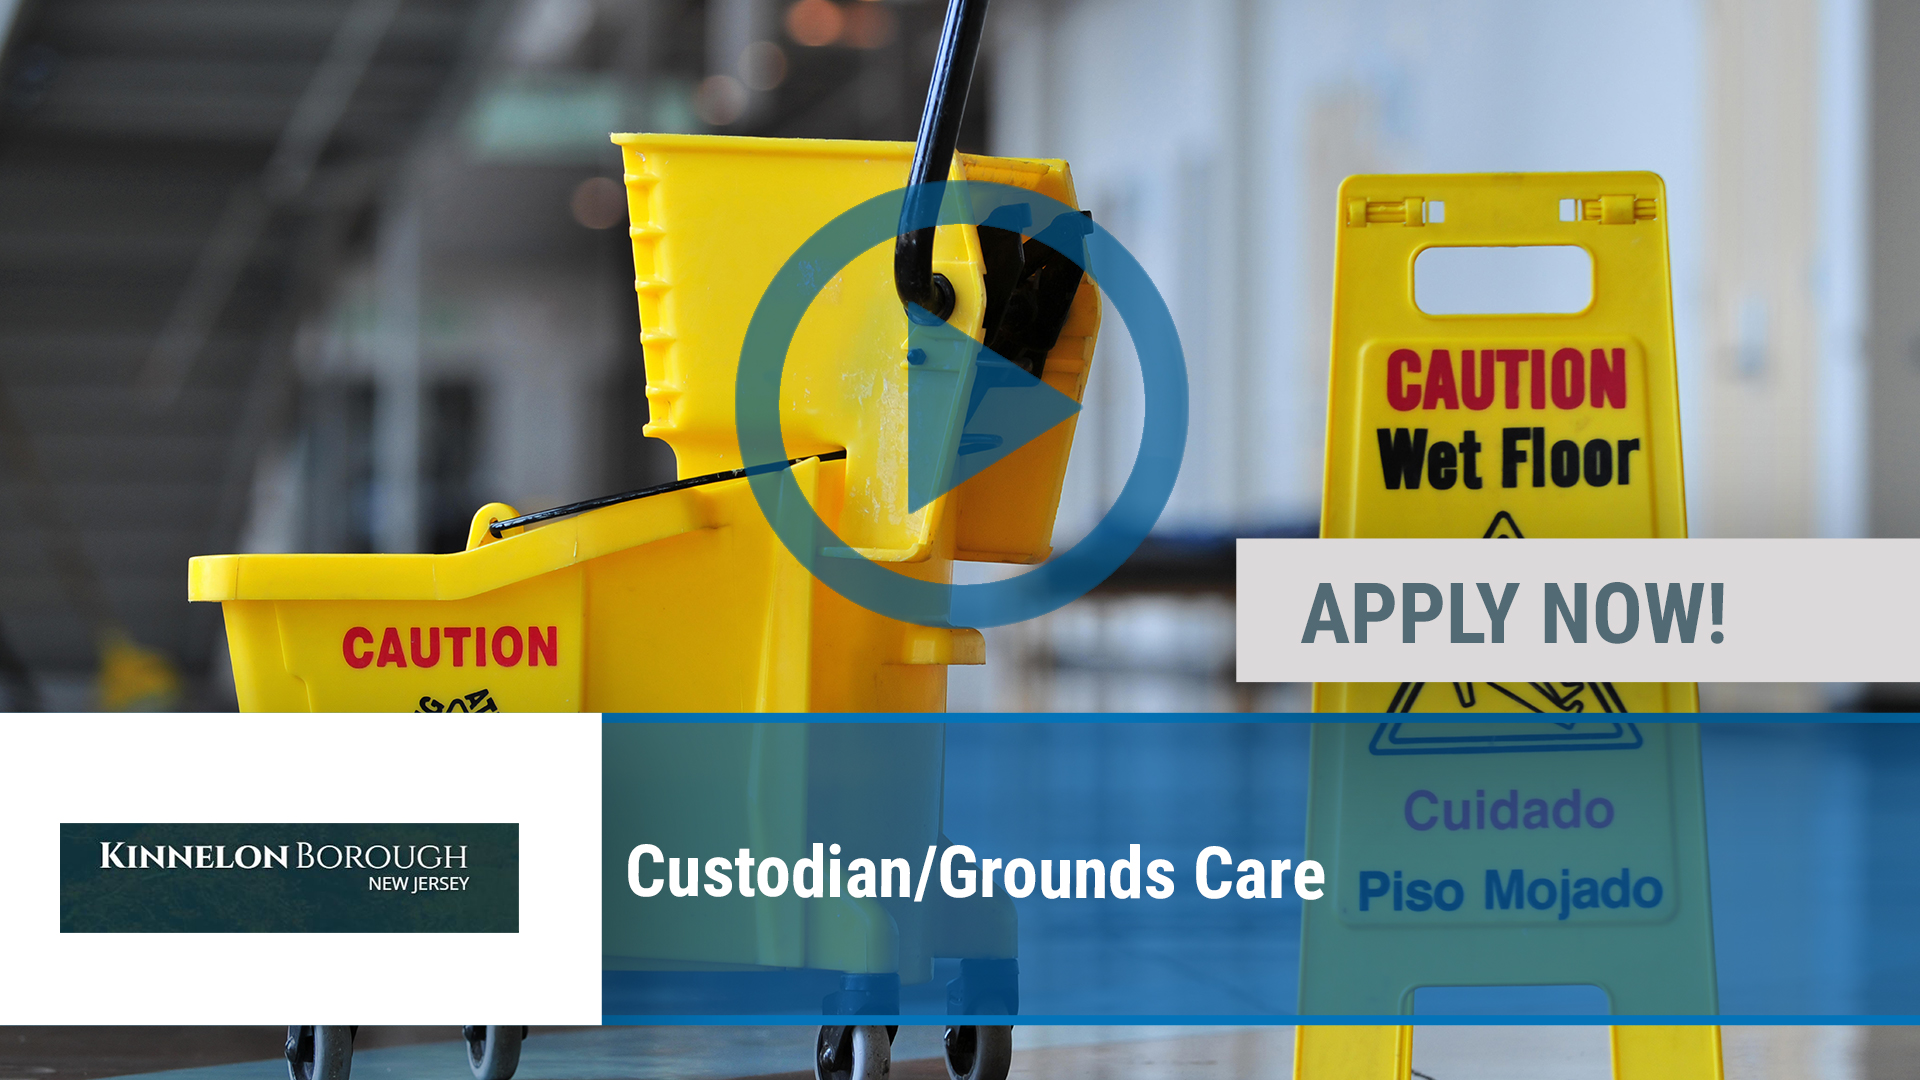 Watch our careers video for available job opening Custodian_Grounds Care in Kinnelon, NJ